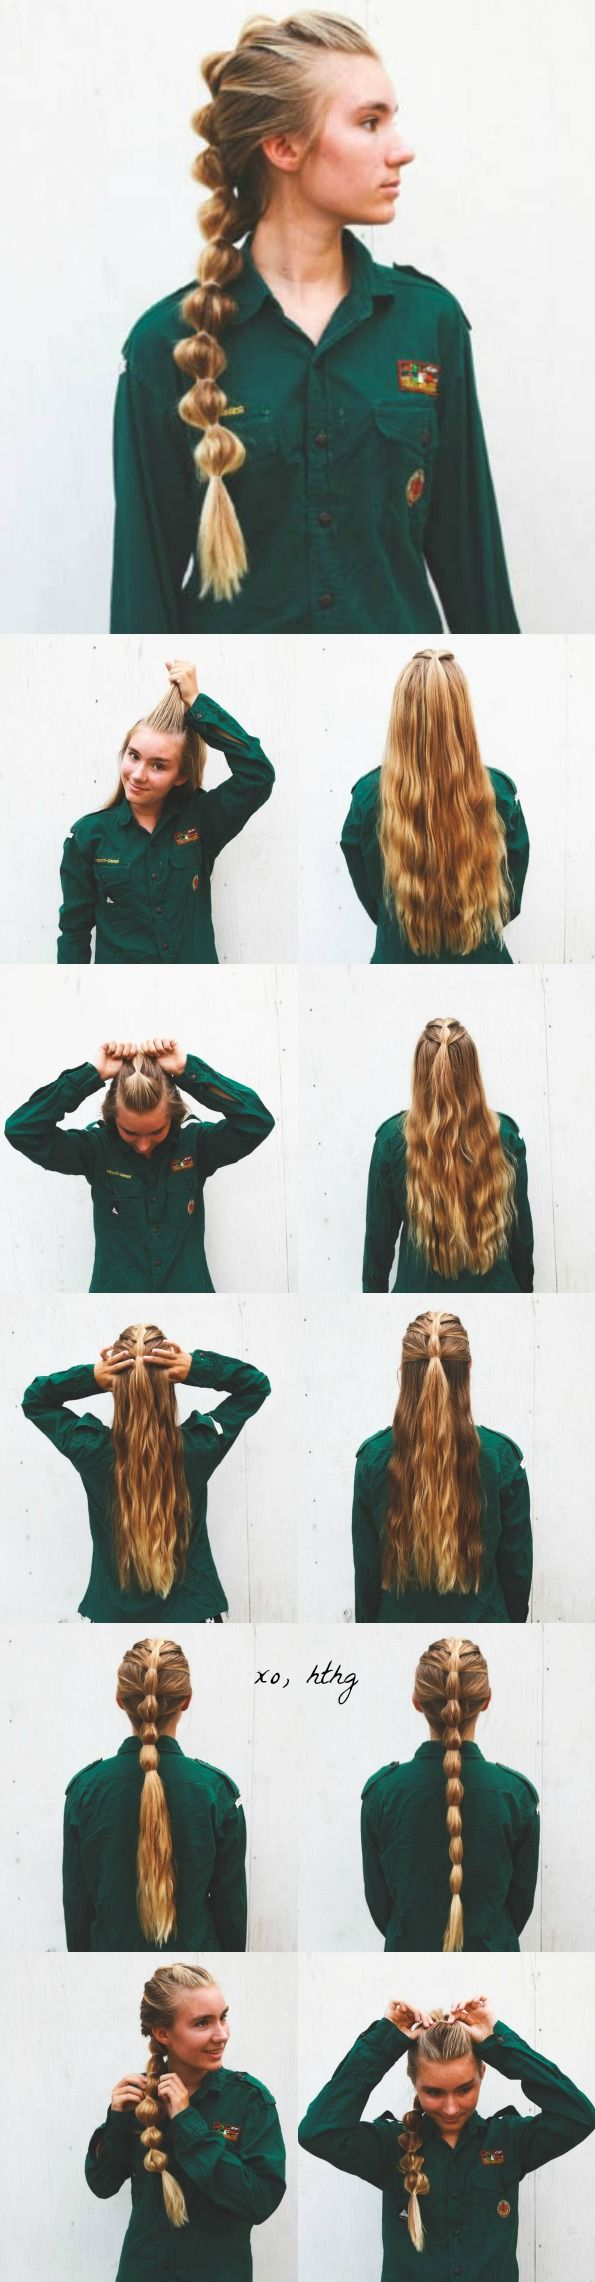 More Viking Hair for the modern woman. #hthg #vikinghair...how do they make this up??